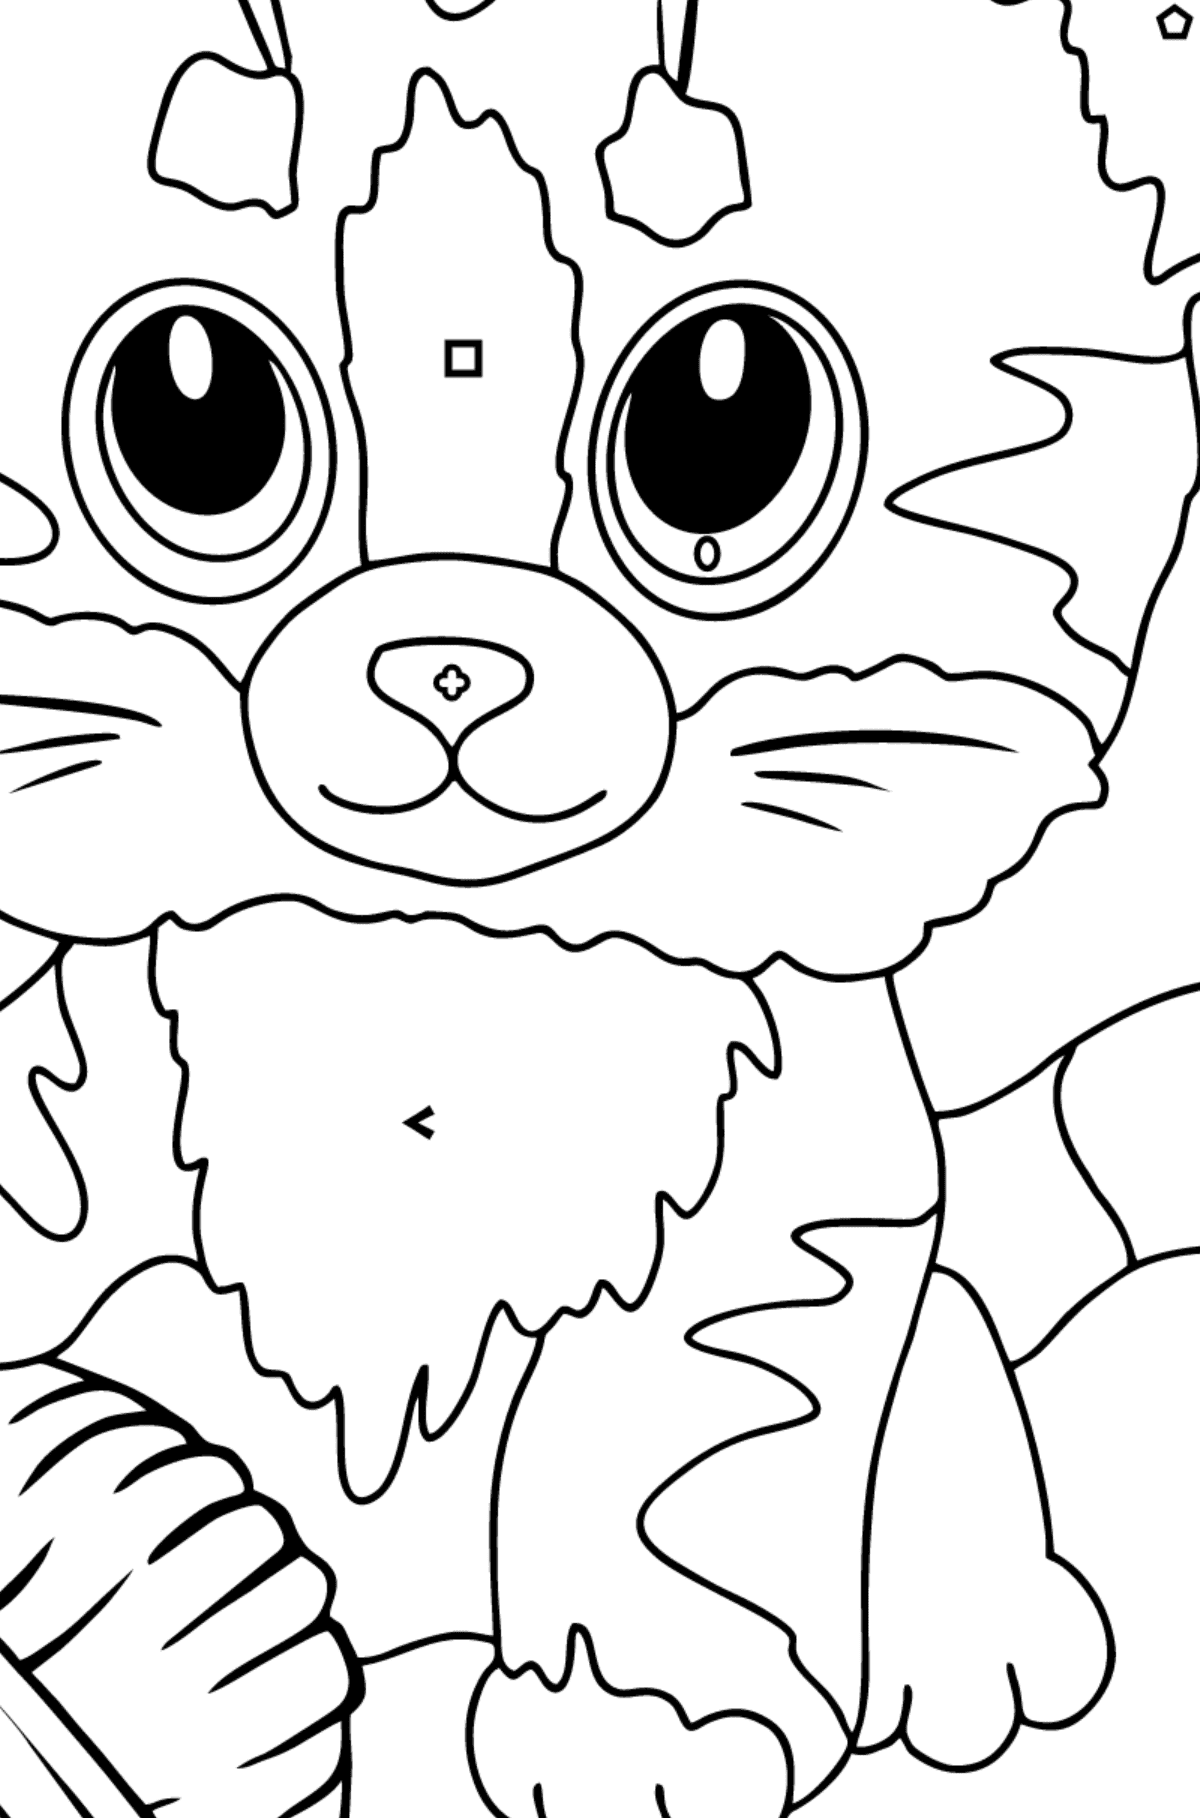 Coloring Page - a Kitten has Caught a Ball of Yarn - Coloring by Symbols and Geometric Shapes for Children